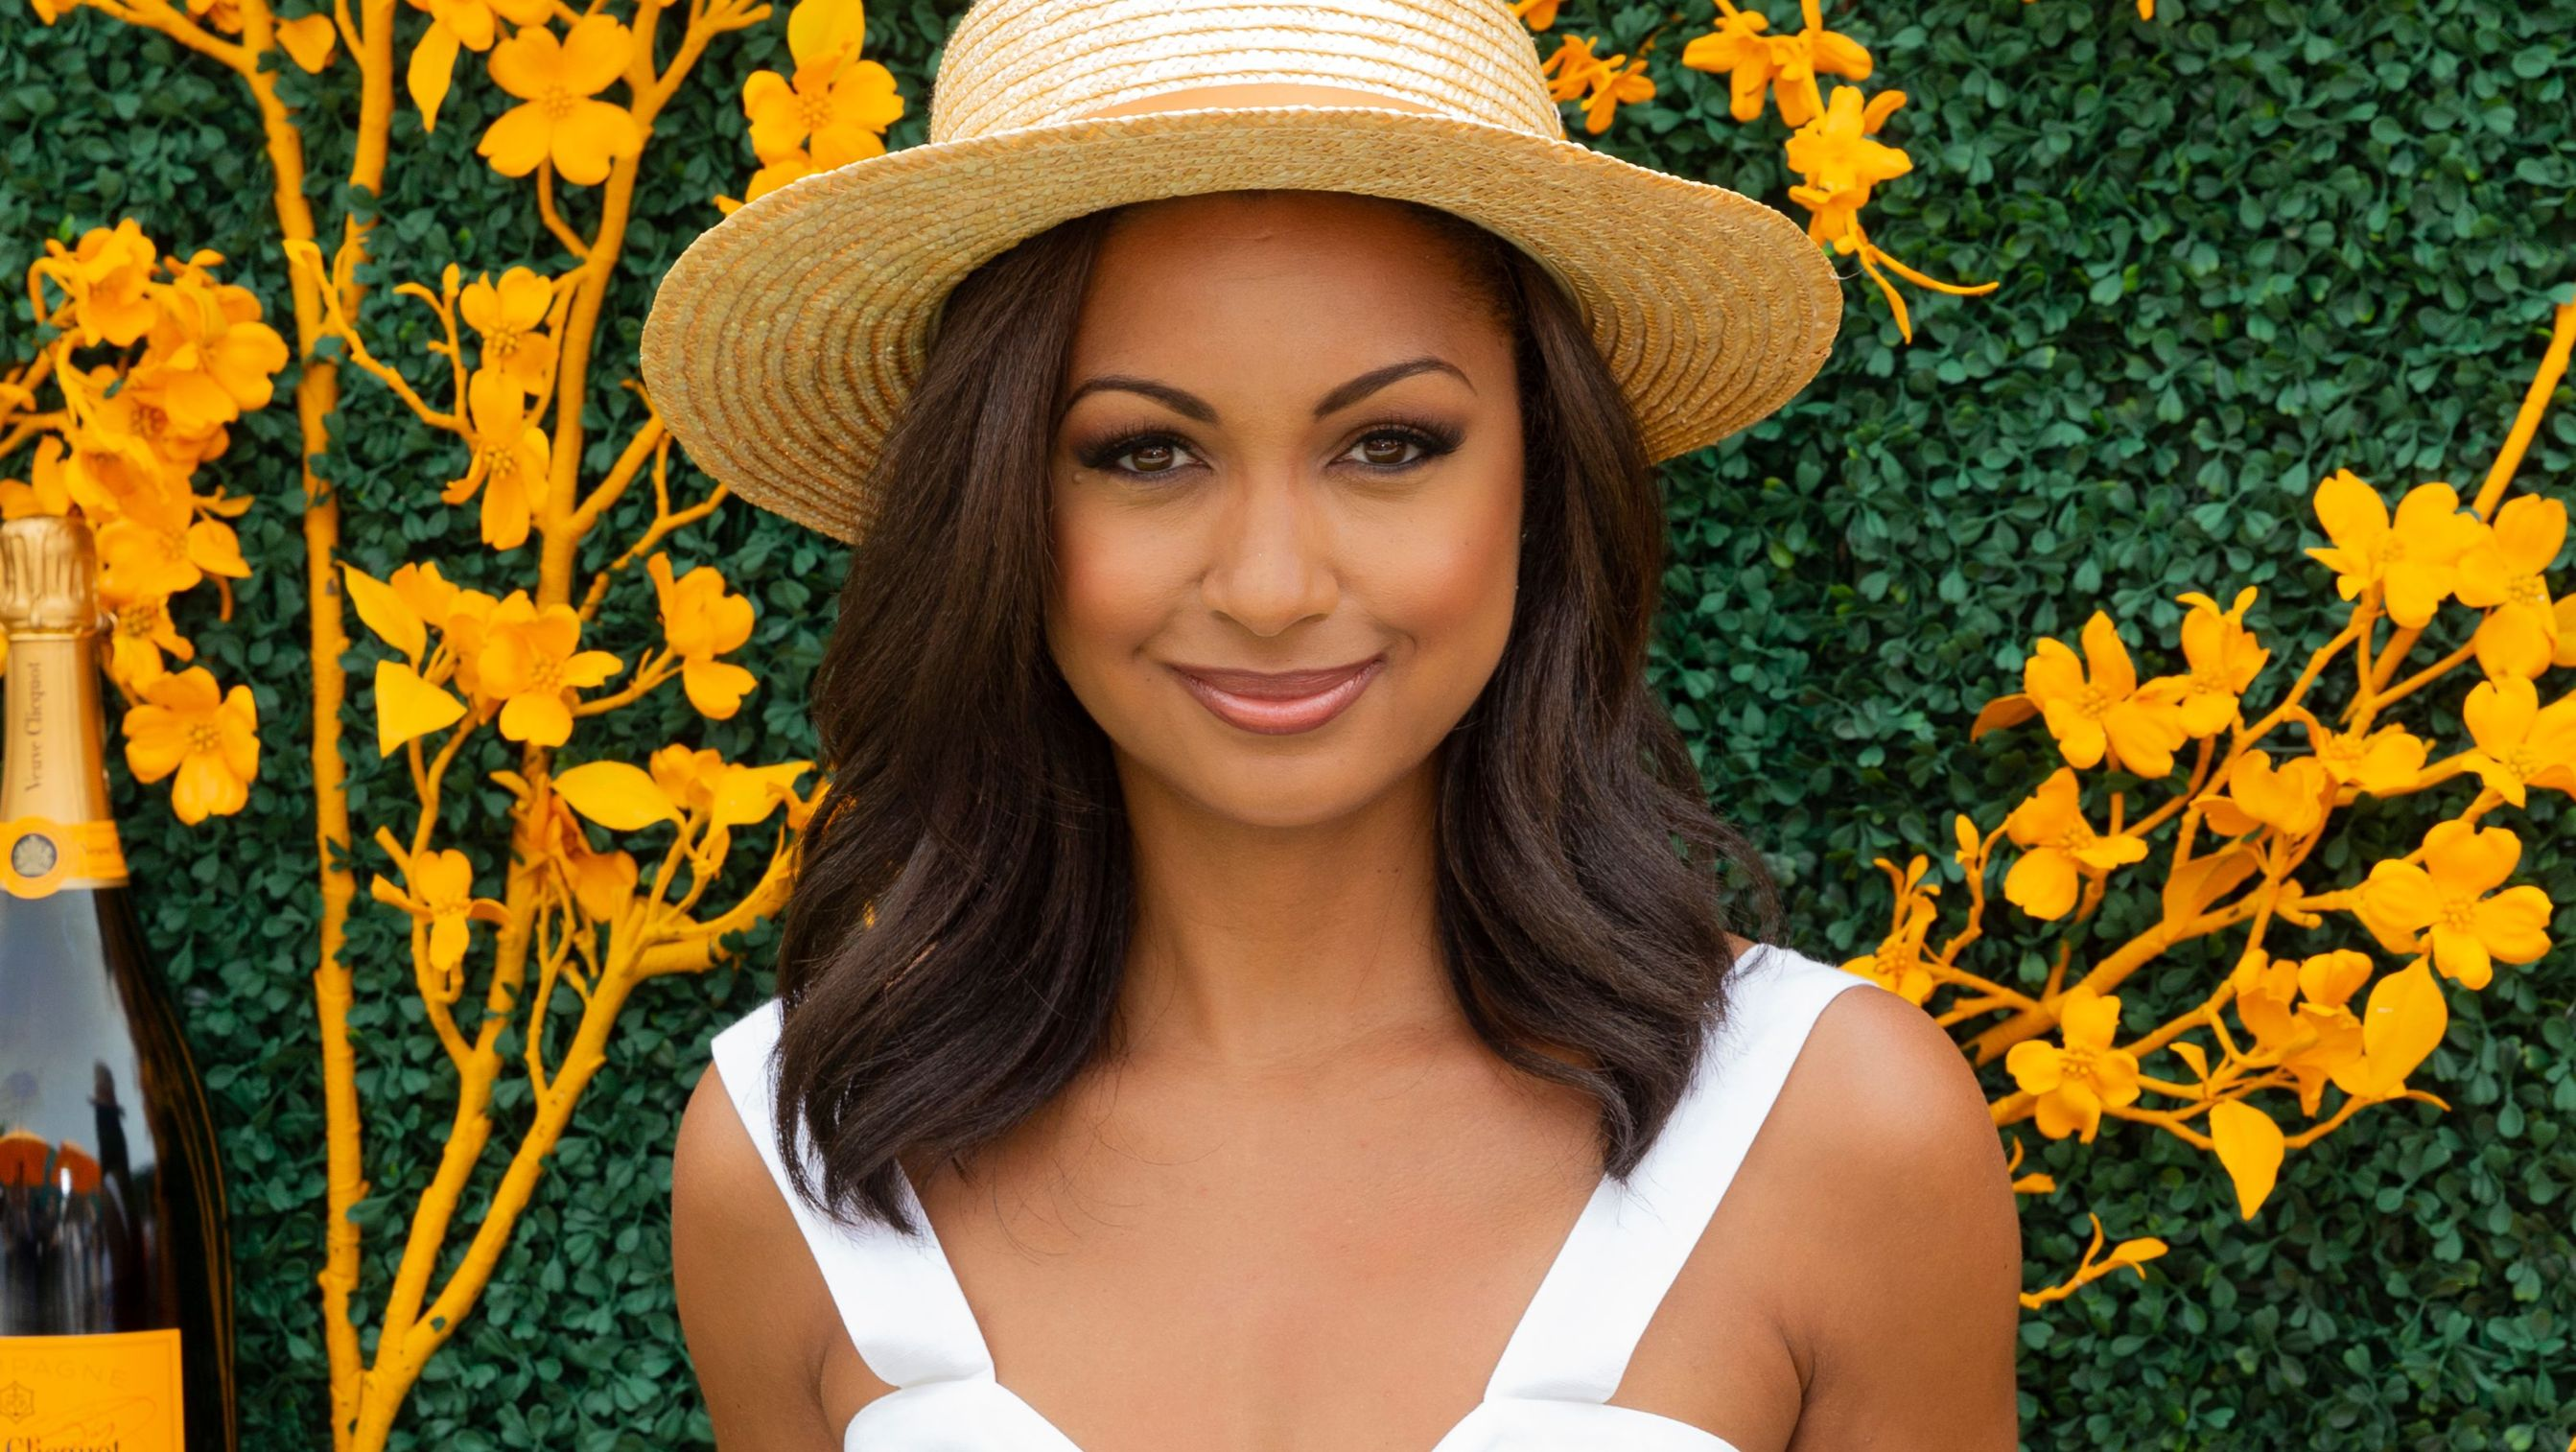 Eboni K. Williams wears a straw hat and white top.